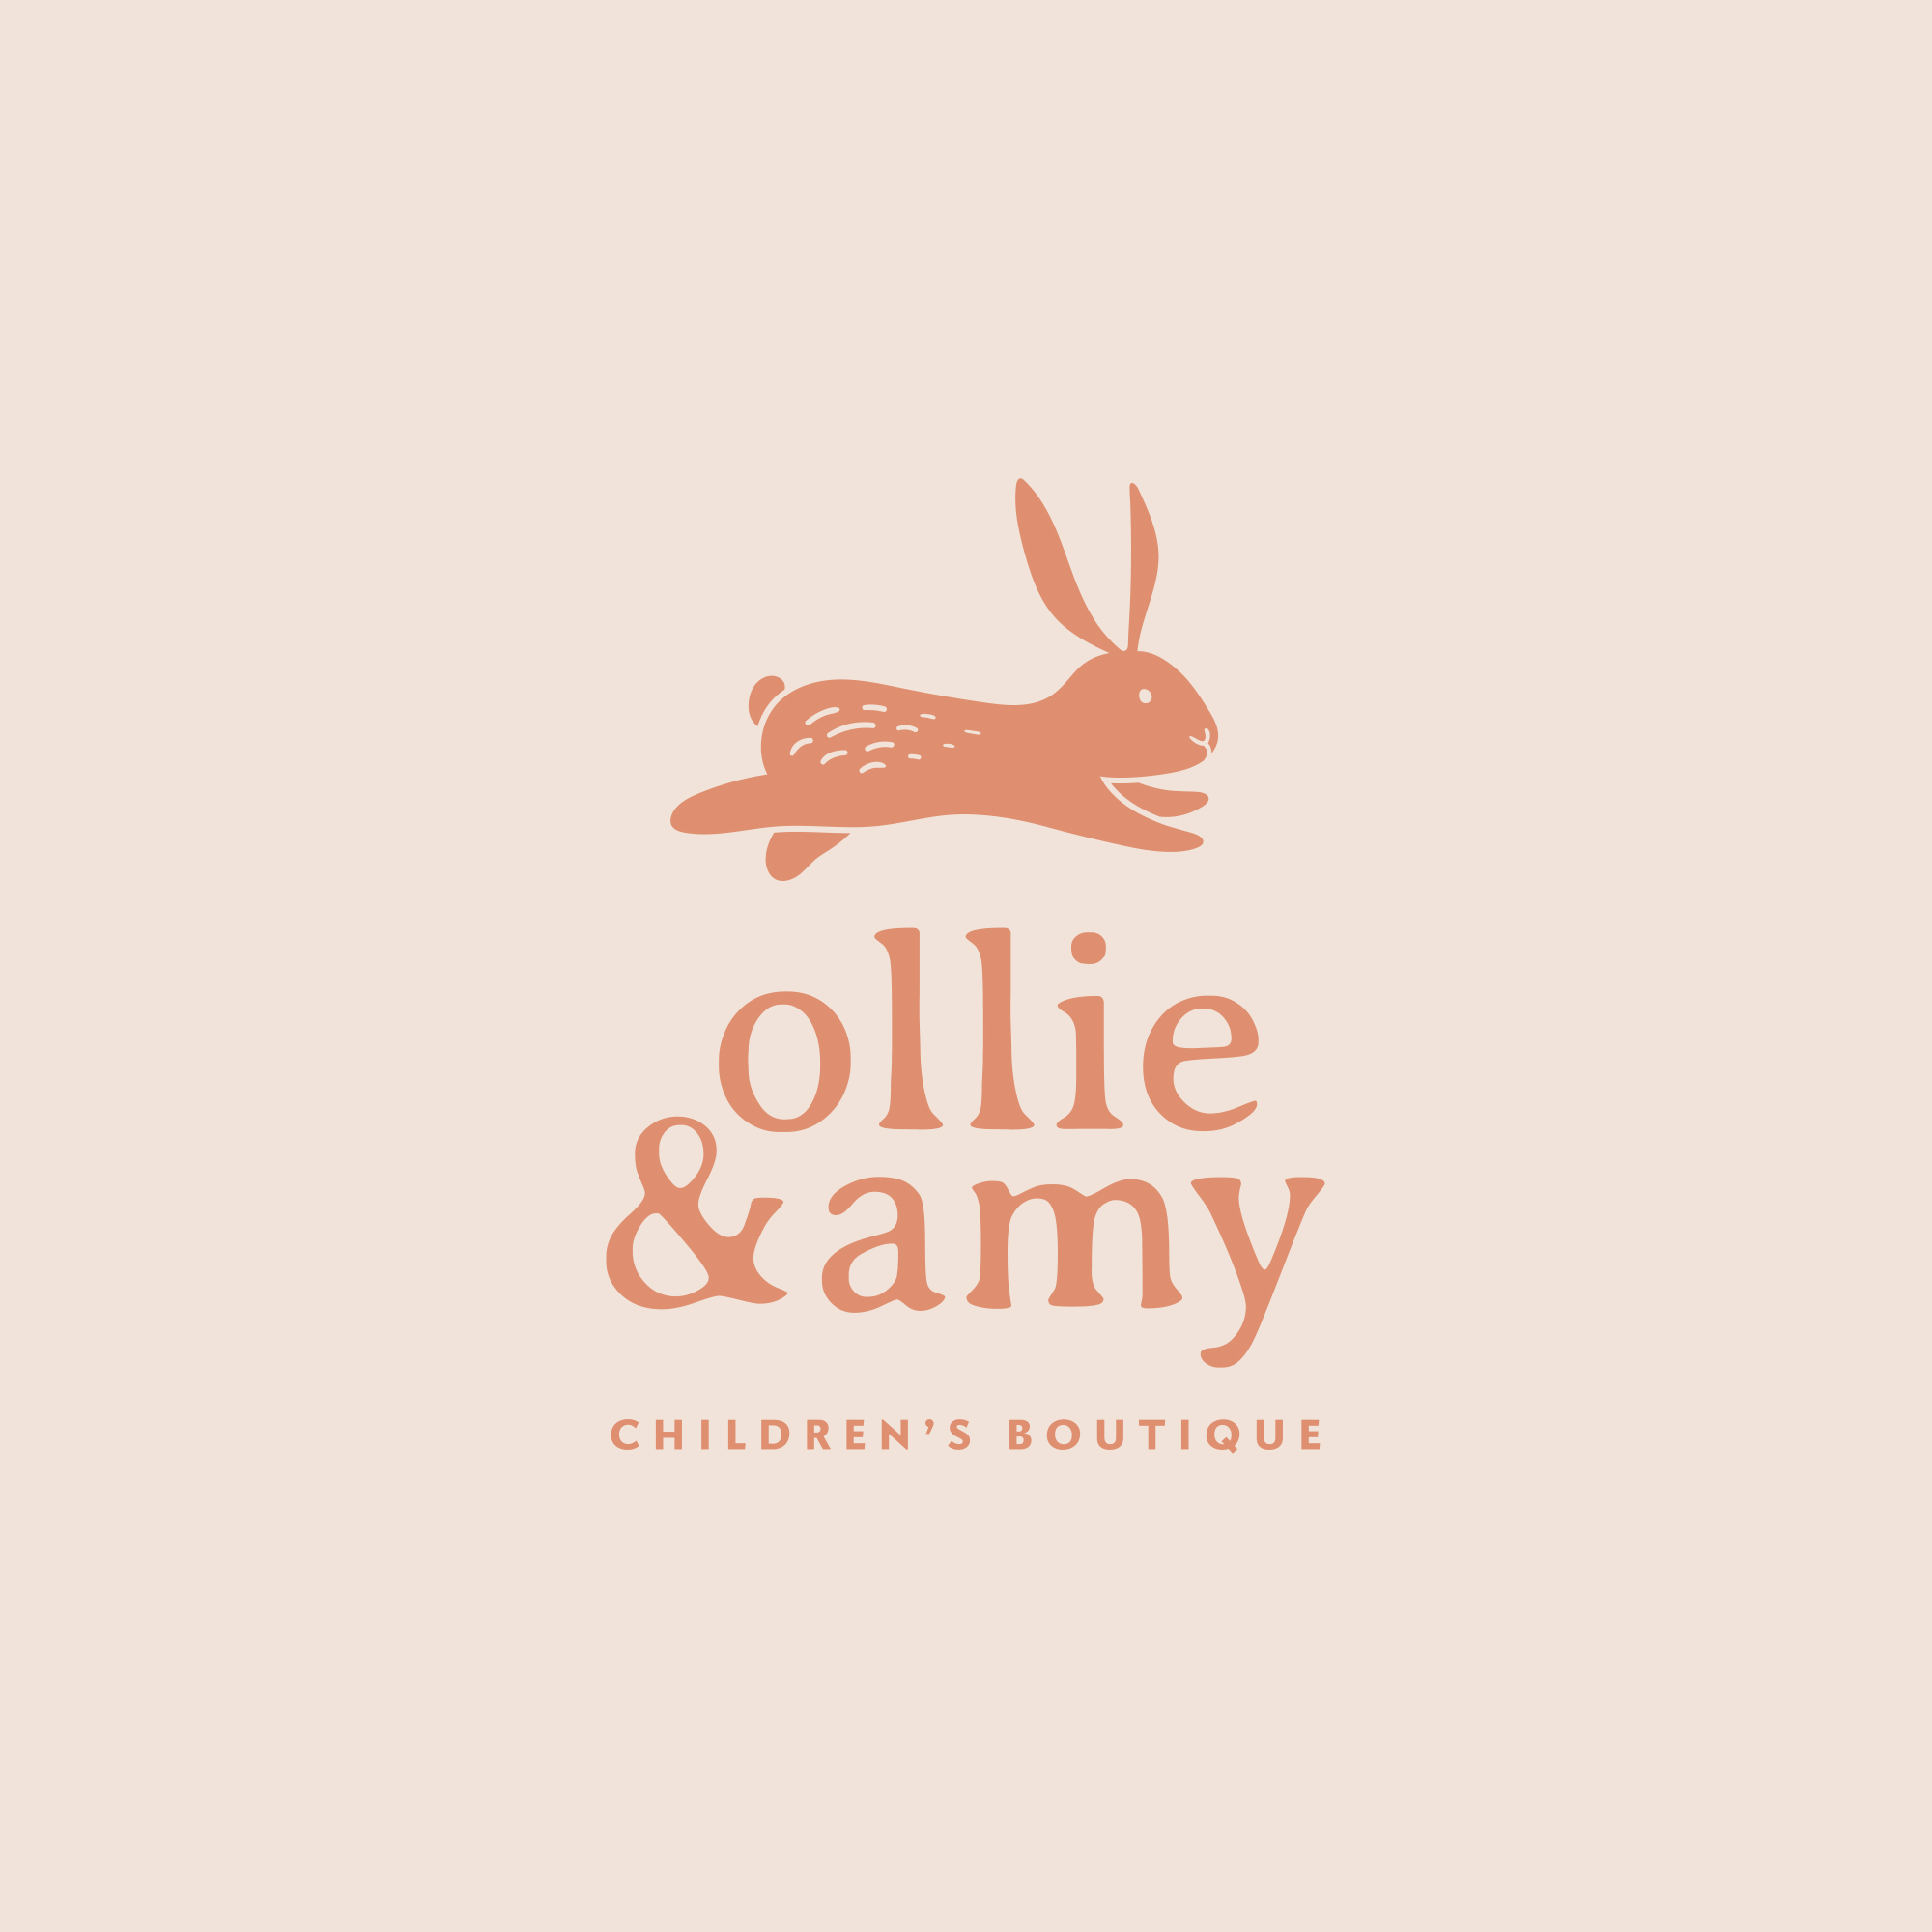 OLLIE & AMY -  CHILDREN'S BOUTIQUE BRAND PACKAGE